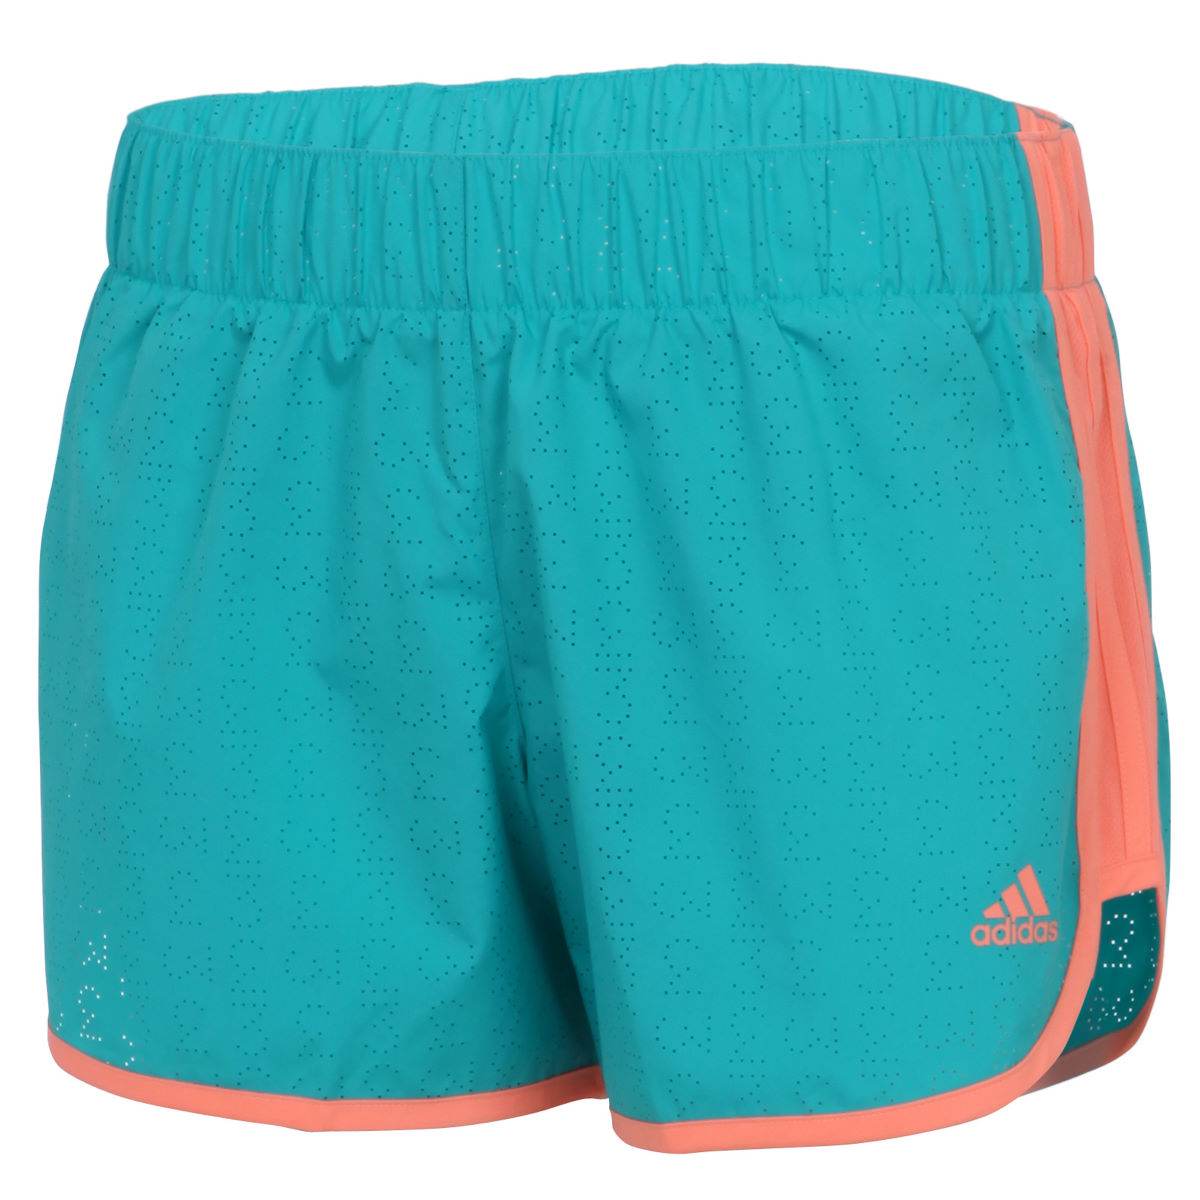 Adidas Womens M10 Perforated Short (SS16)   Running Shorts